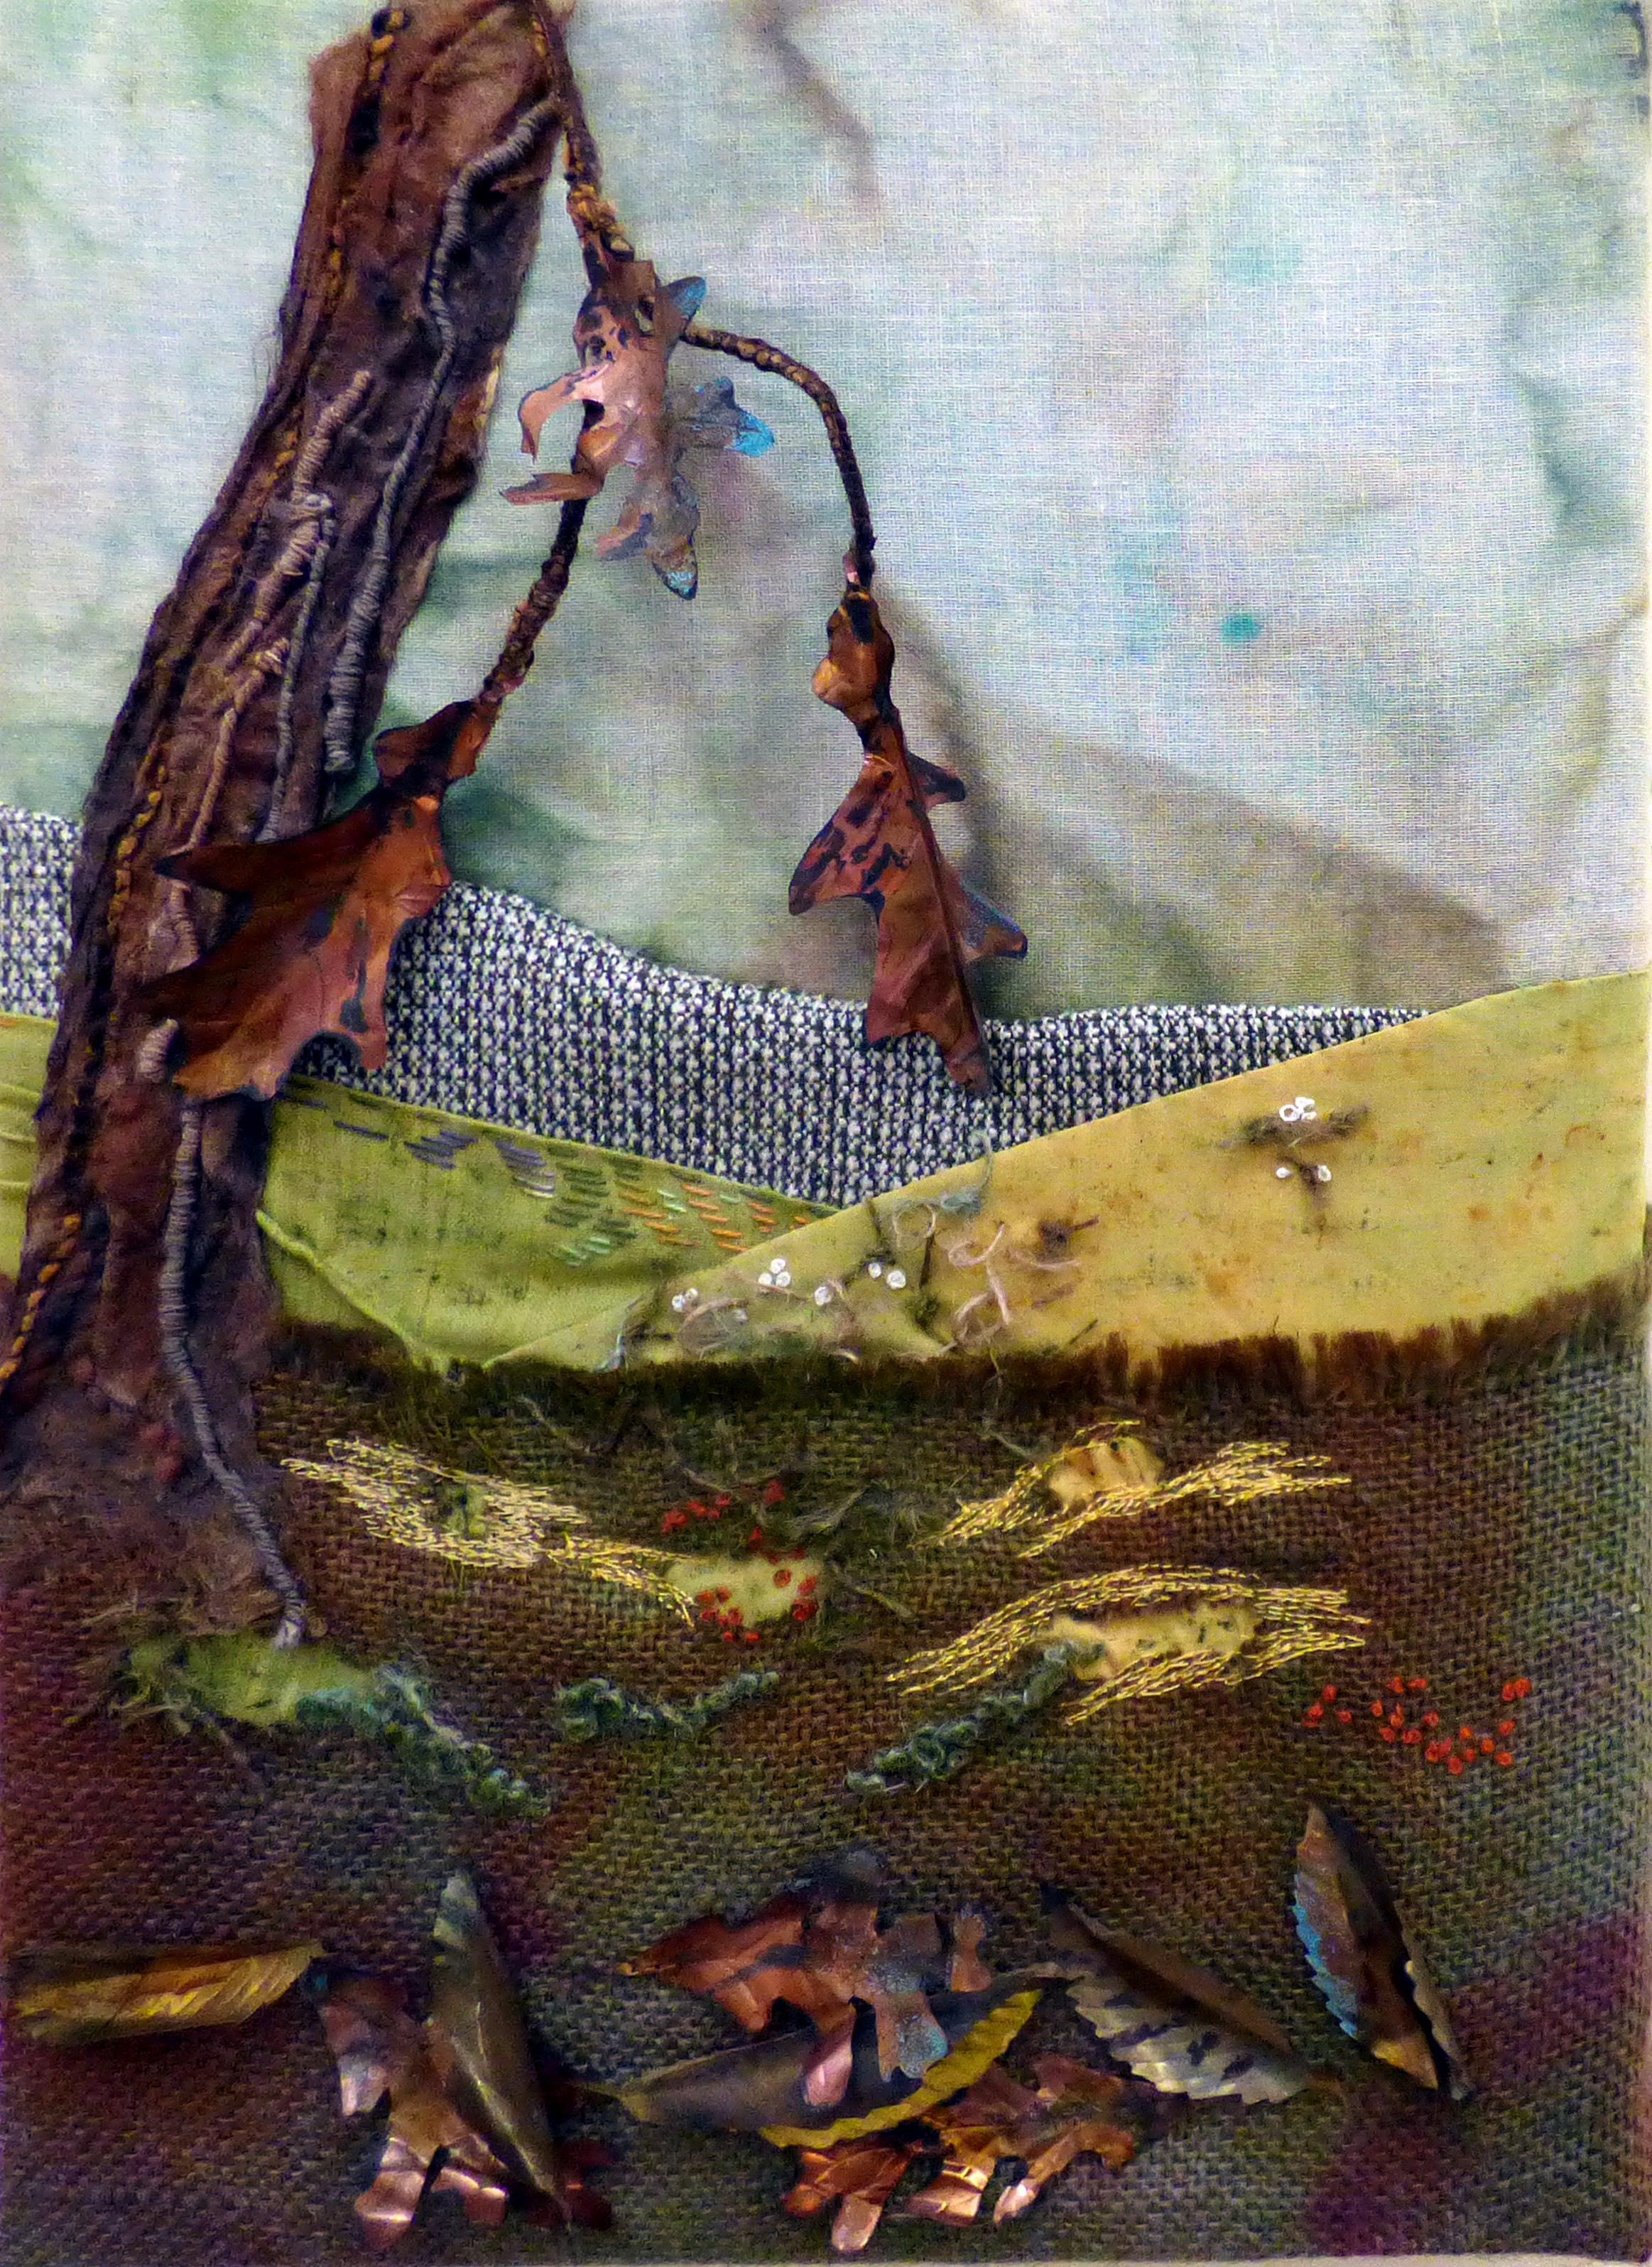 AN OUTSTANDING COUNTRY ESTATE by Judi Brown, Glossop & District EG, hand and machine stitch, silk paper, metal shim